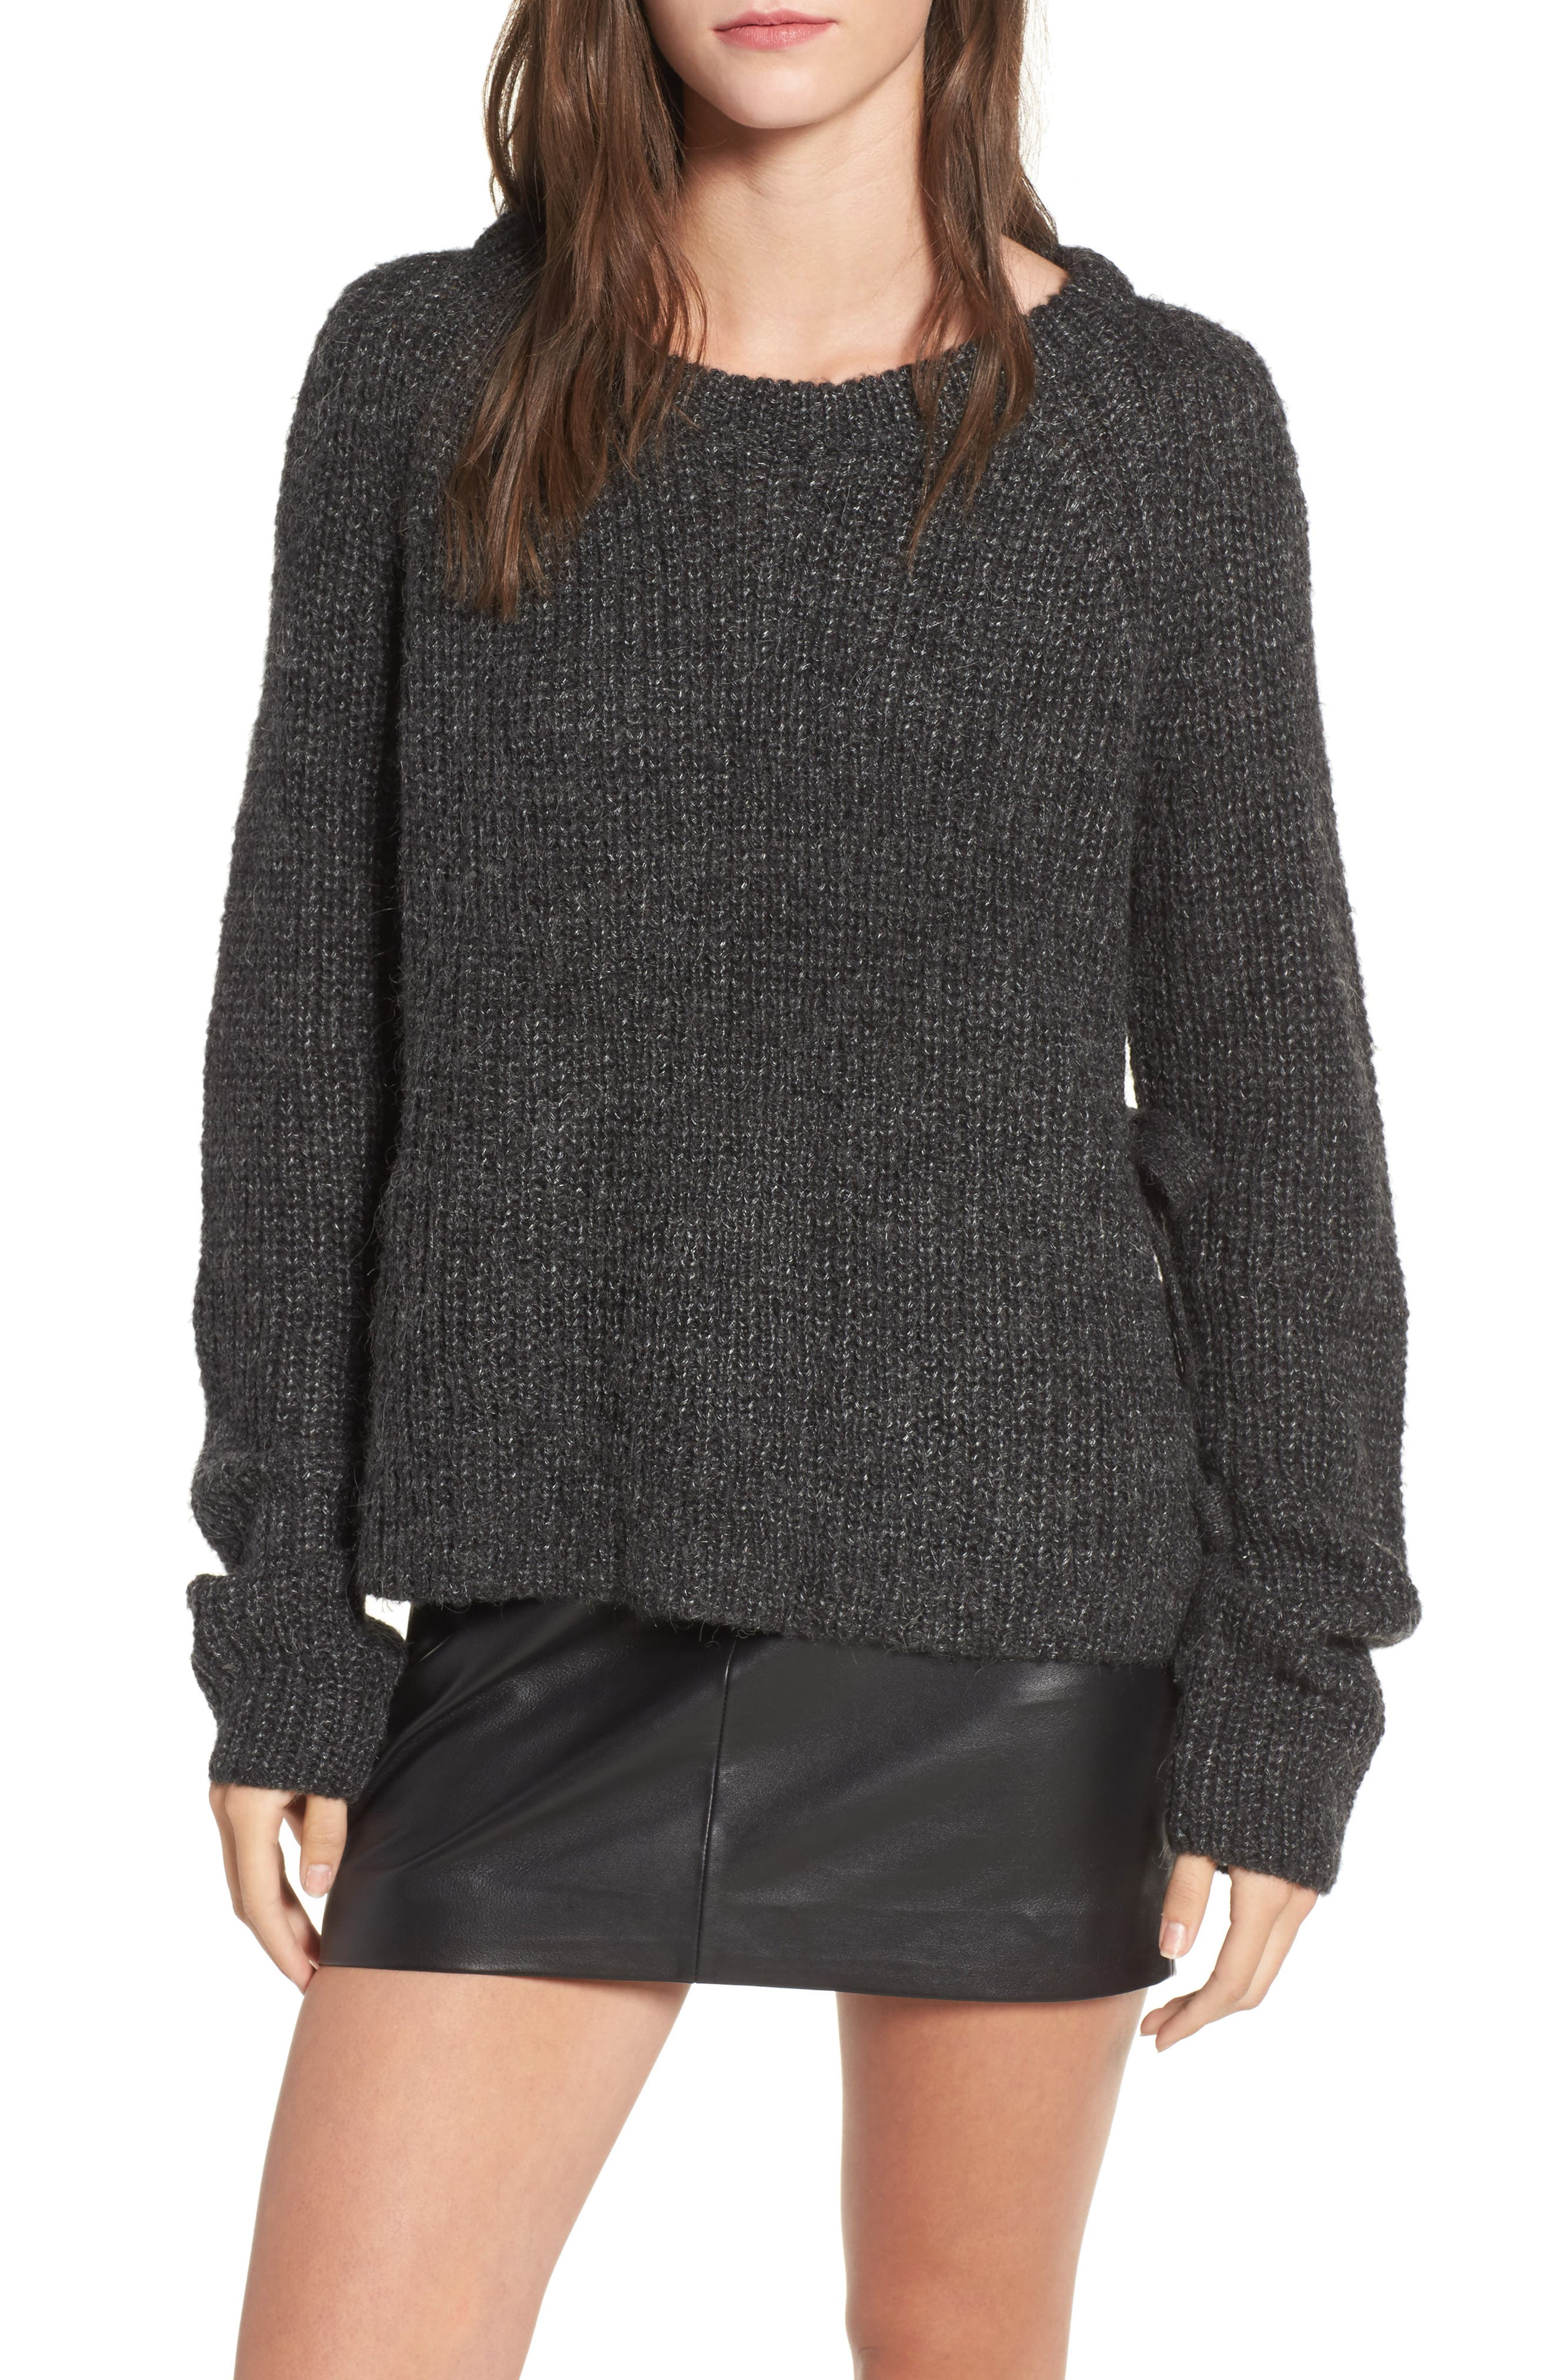 Alternate Image 1 Selected - ASTR the Label Lexie Side Tie Sweater